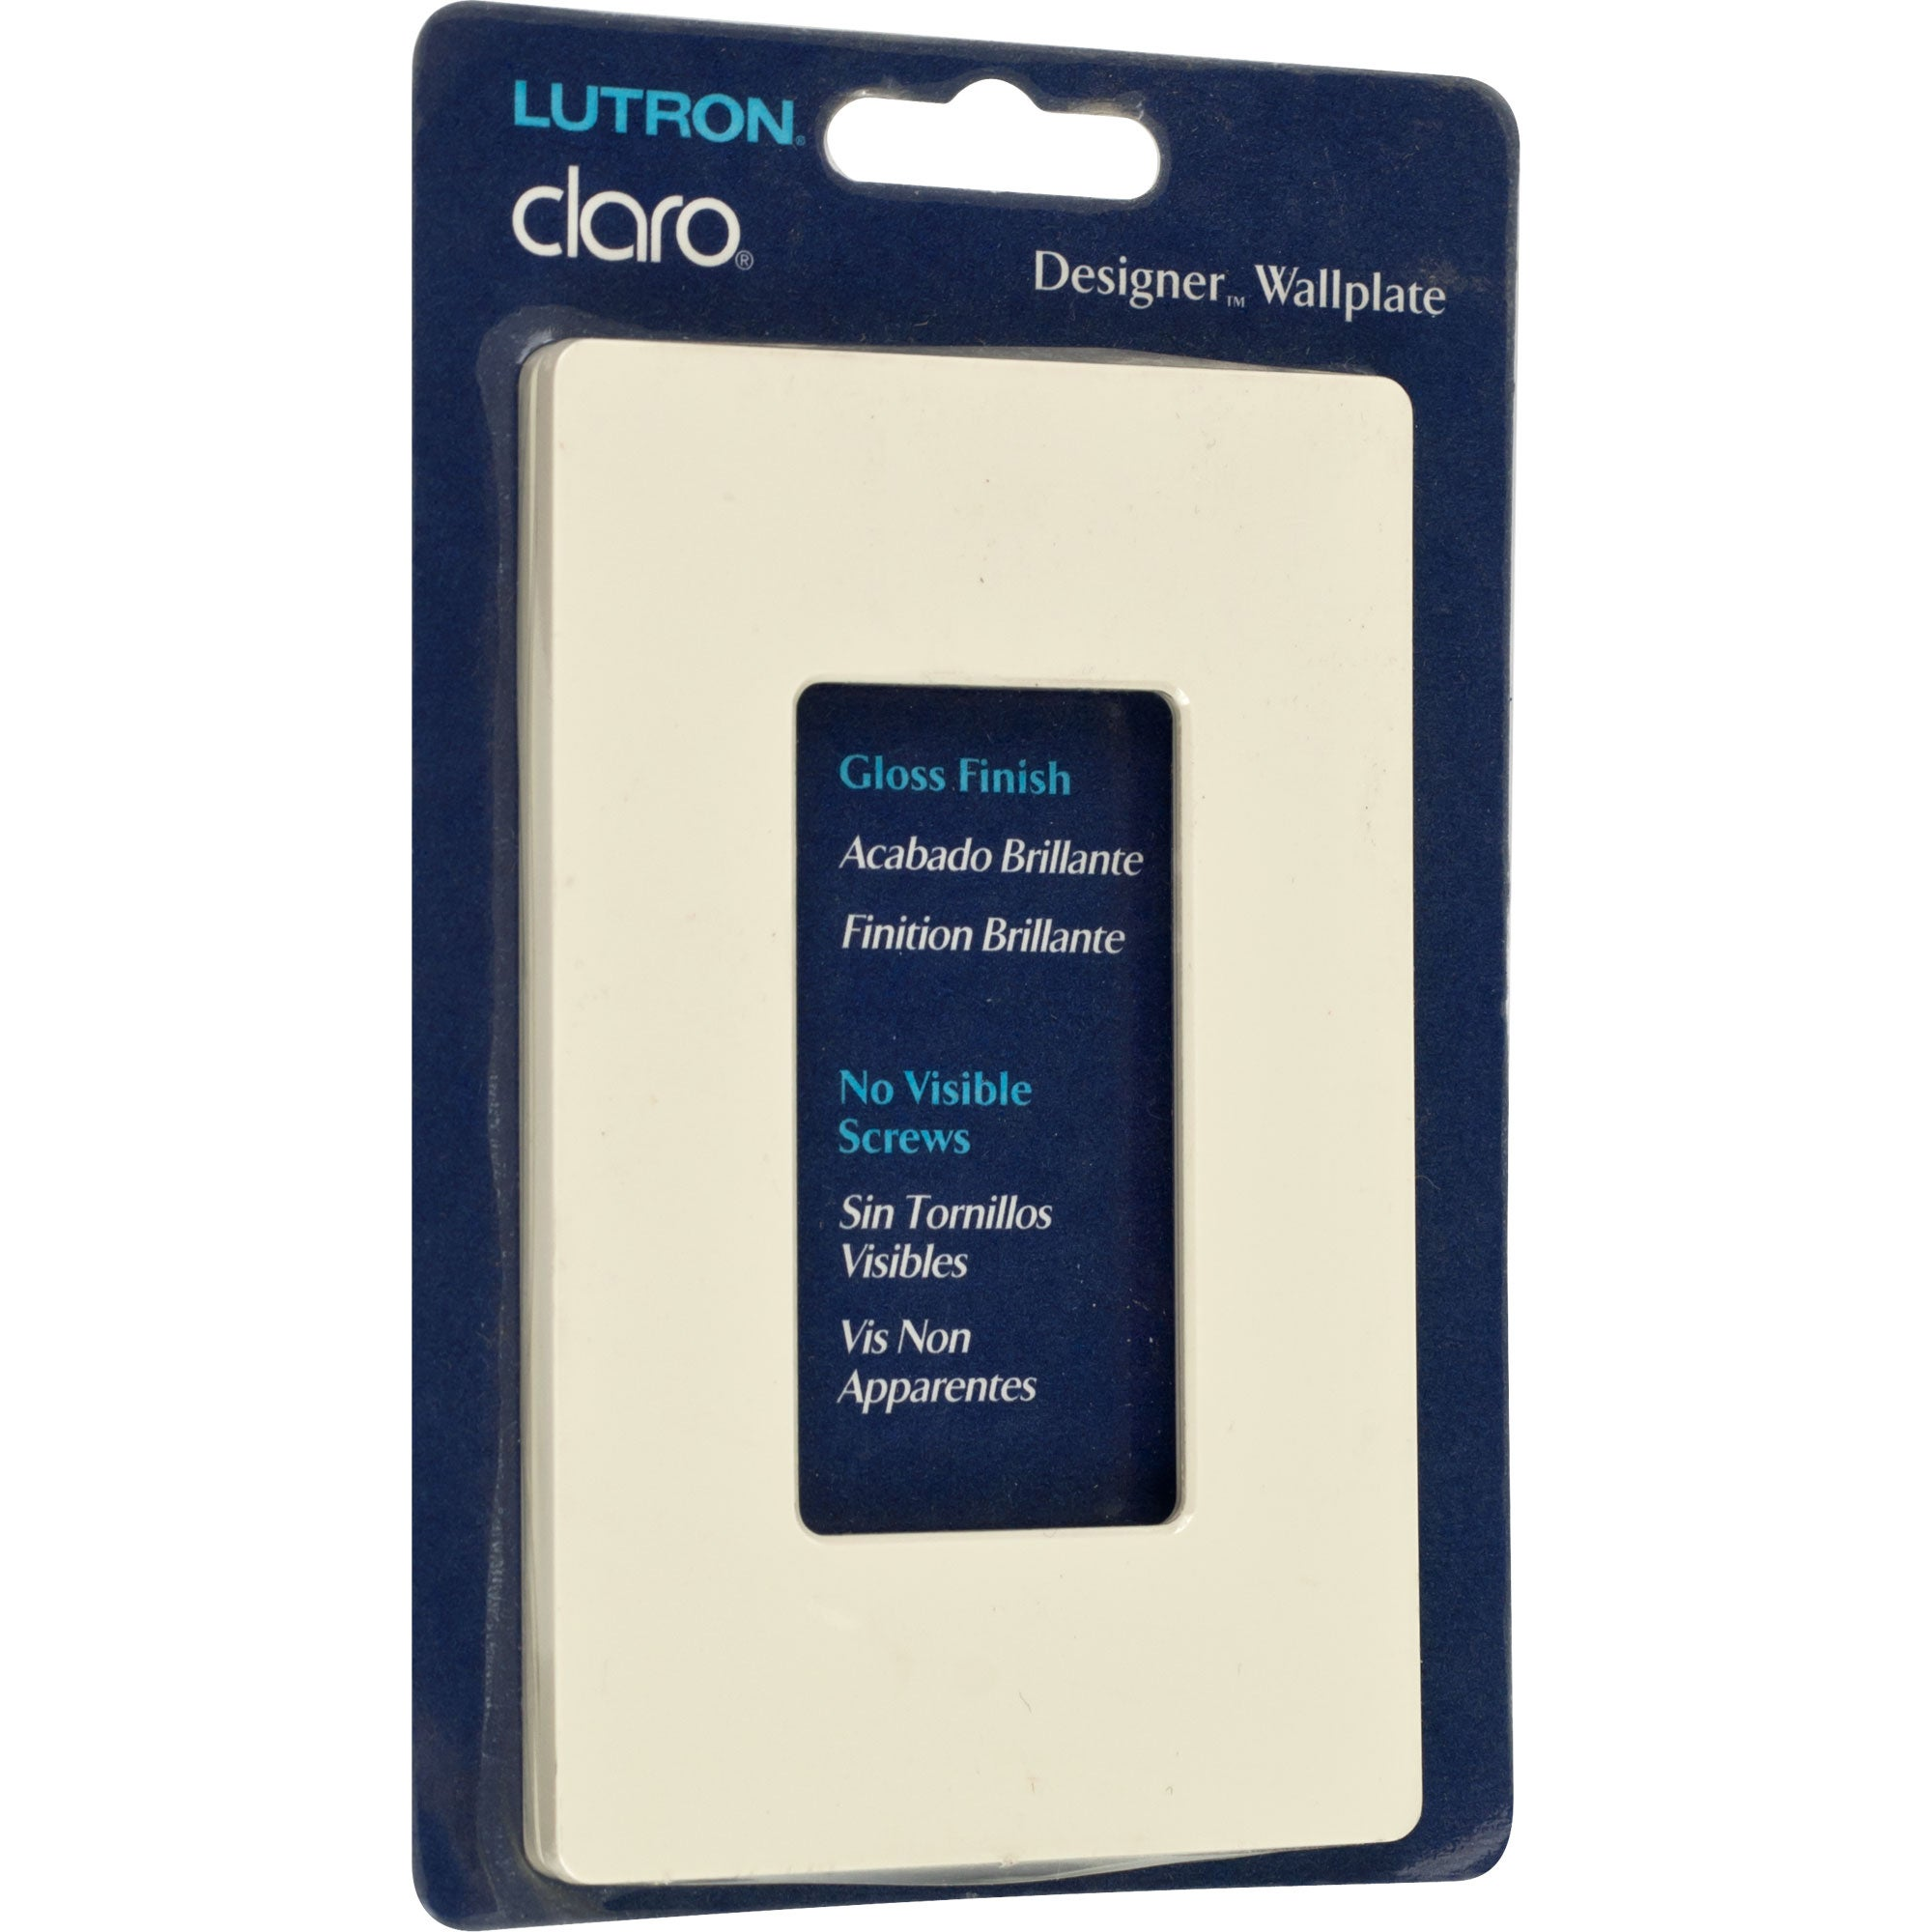 Lutron Claro Gloss Almond Single-gang Rocker Wallplates (Set of 8)